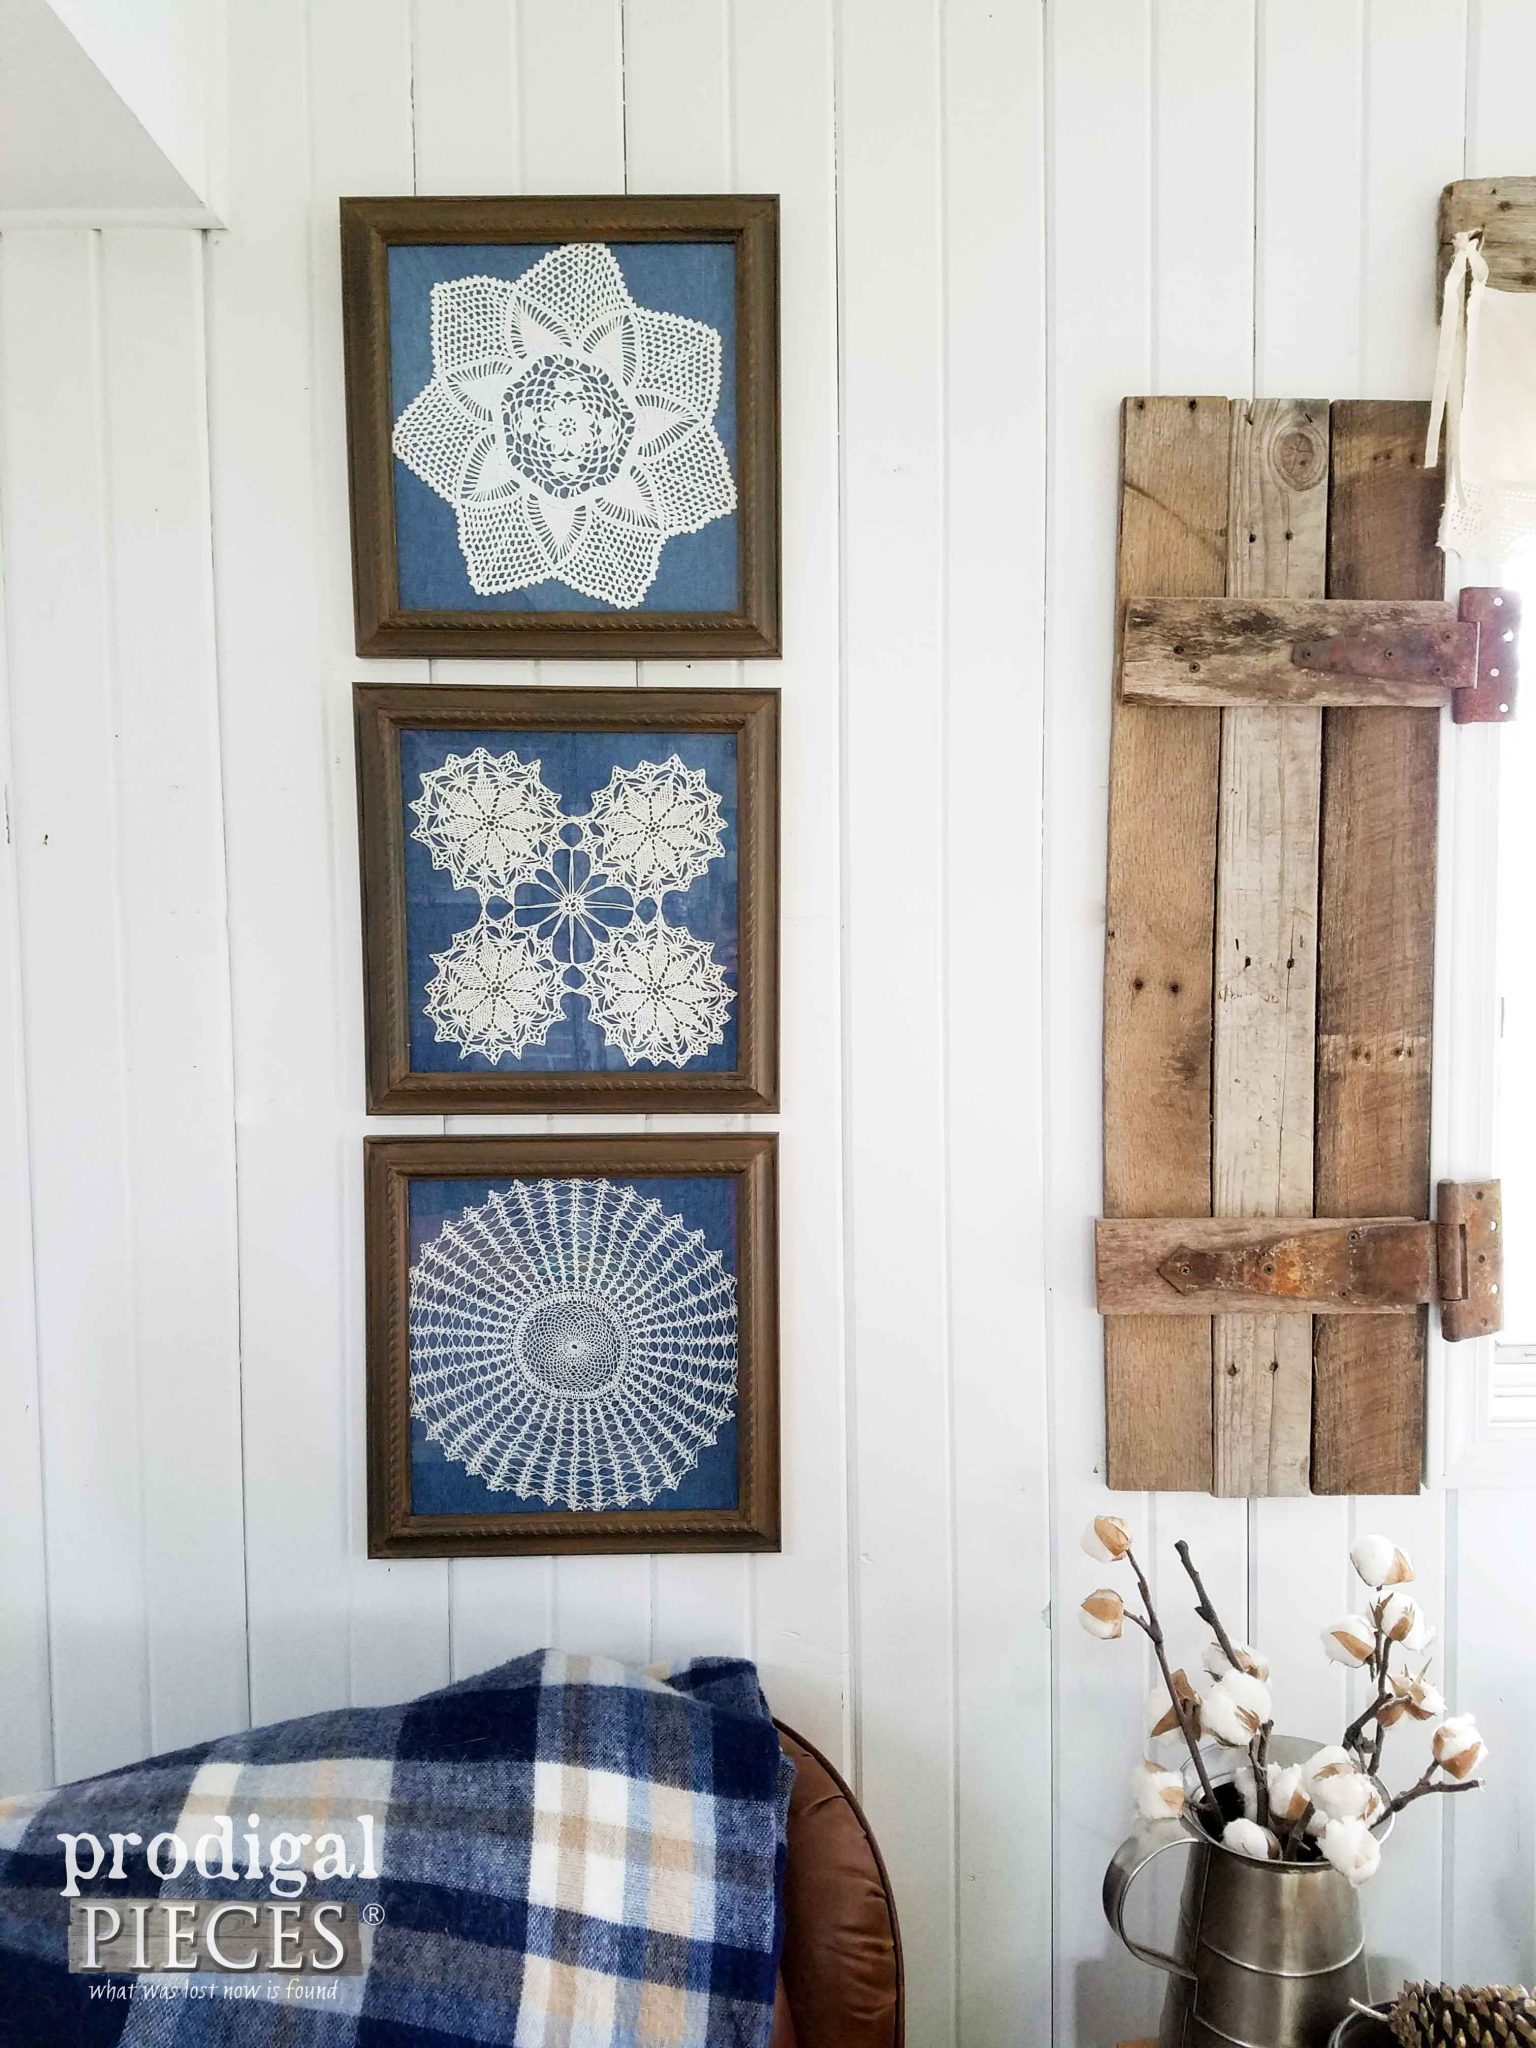 Vintage Doily Art by Prodigal Pieces | prodigalpieces.com